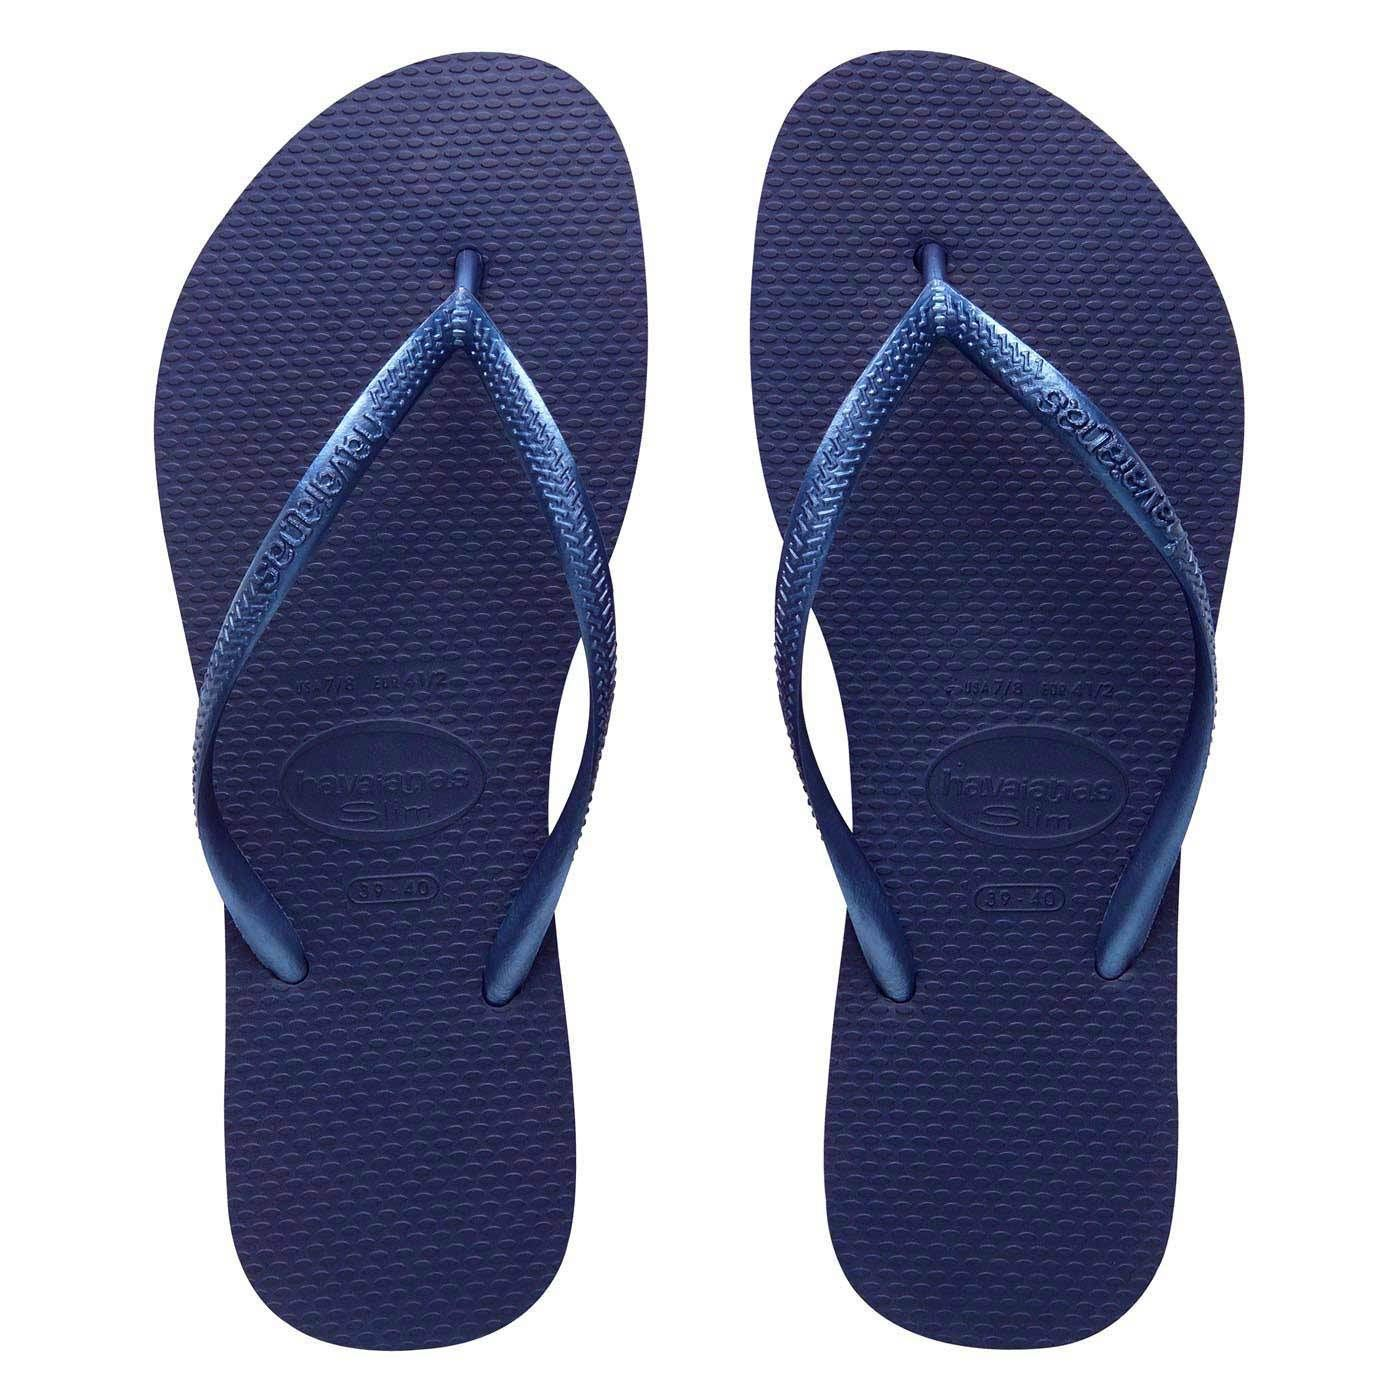 Havaianas Slim Navy Womens New Summer Beach Flip Flops-40 7KPoTFc